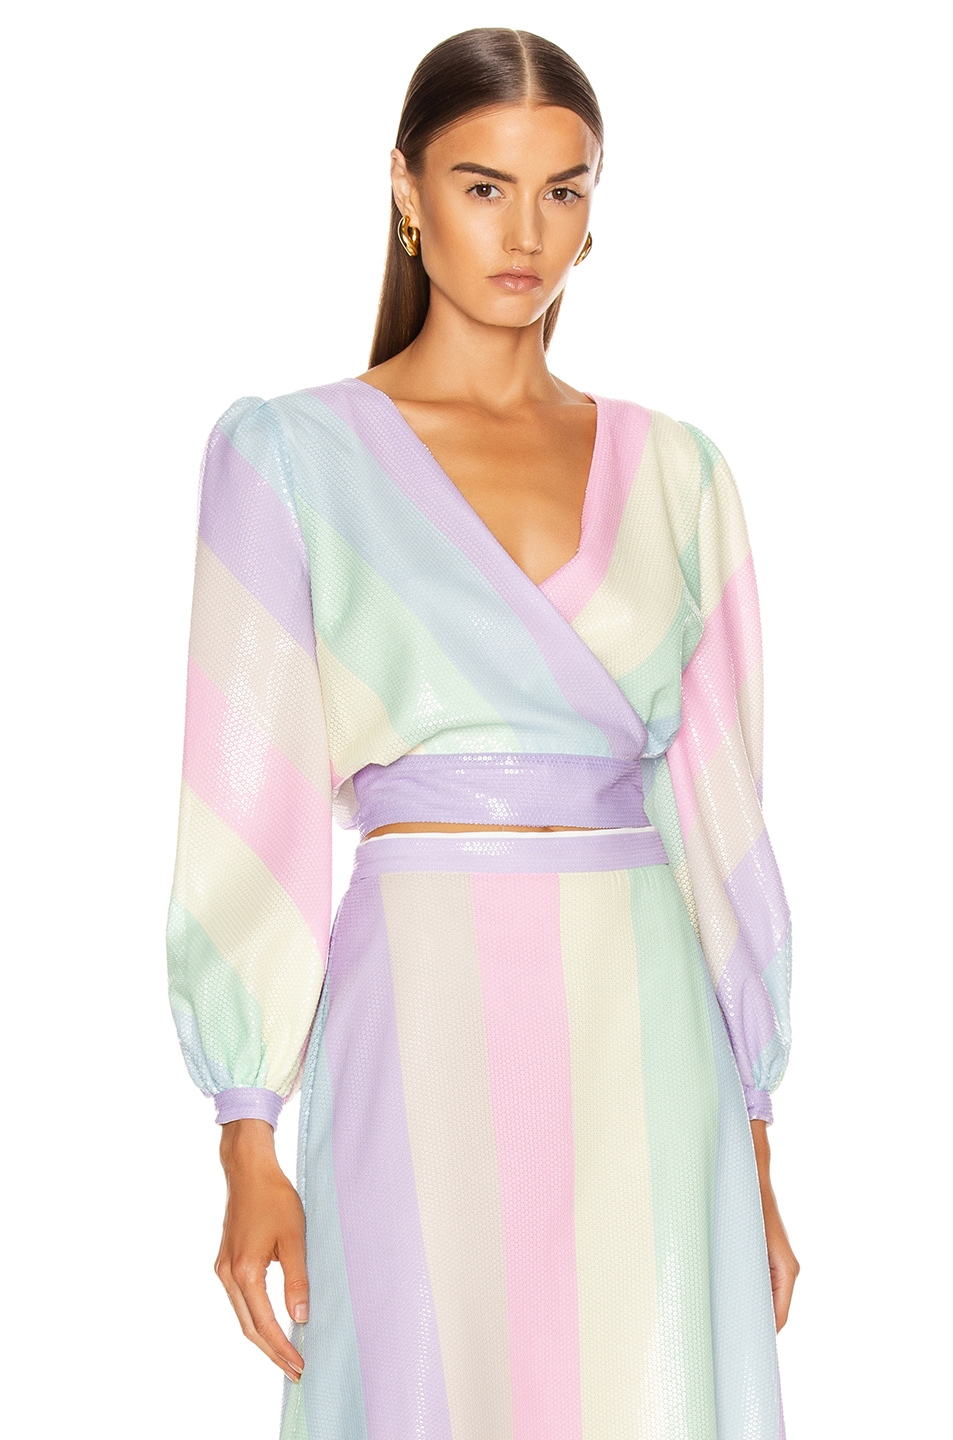 Image 1 of Olivia Rubin Kendall Top in Neapolitan Stripe